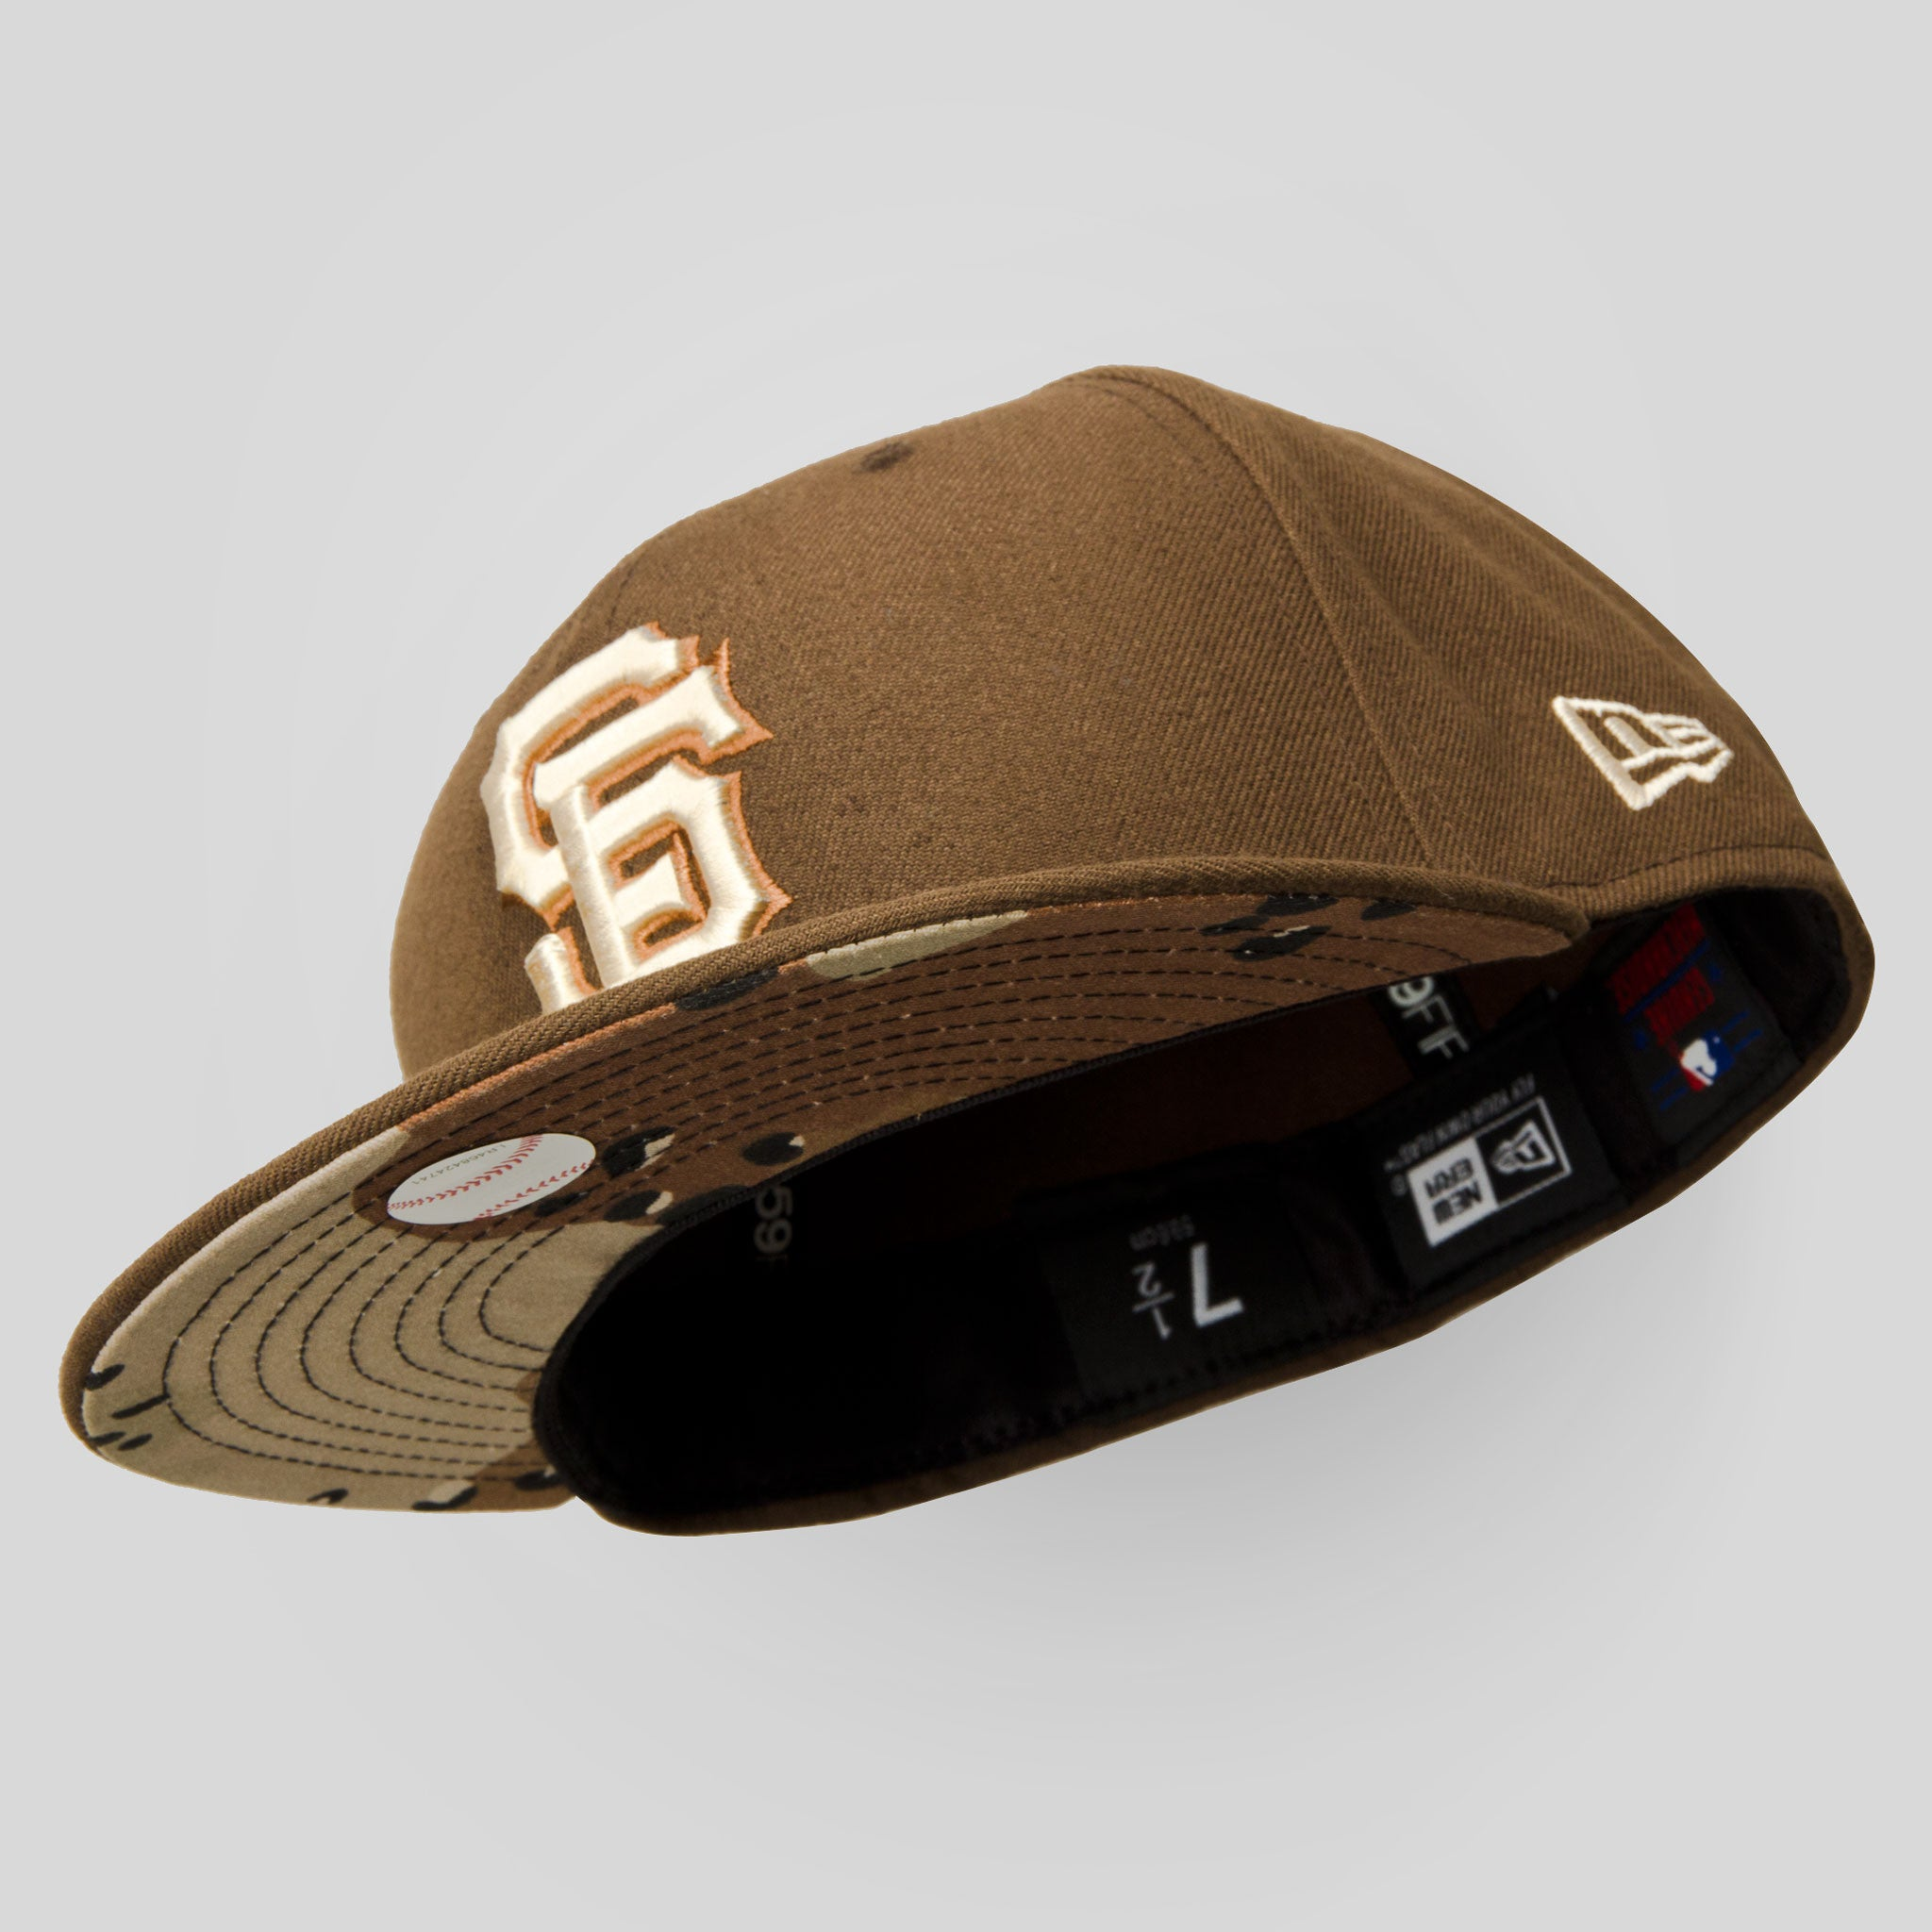 72a4c3ff930da ... netherlands upper playground lux sf giants new era fitted cap in brown  desert camo bd42c 5fcdb